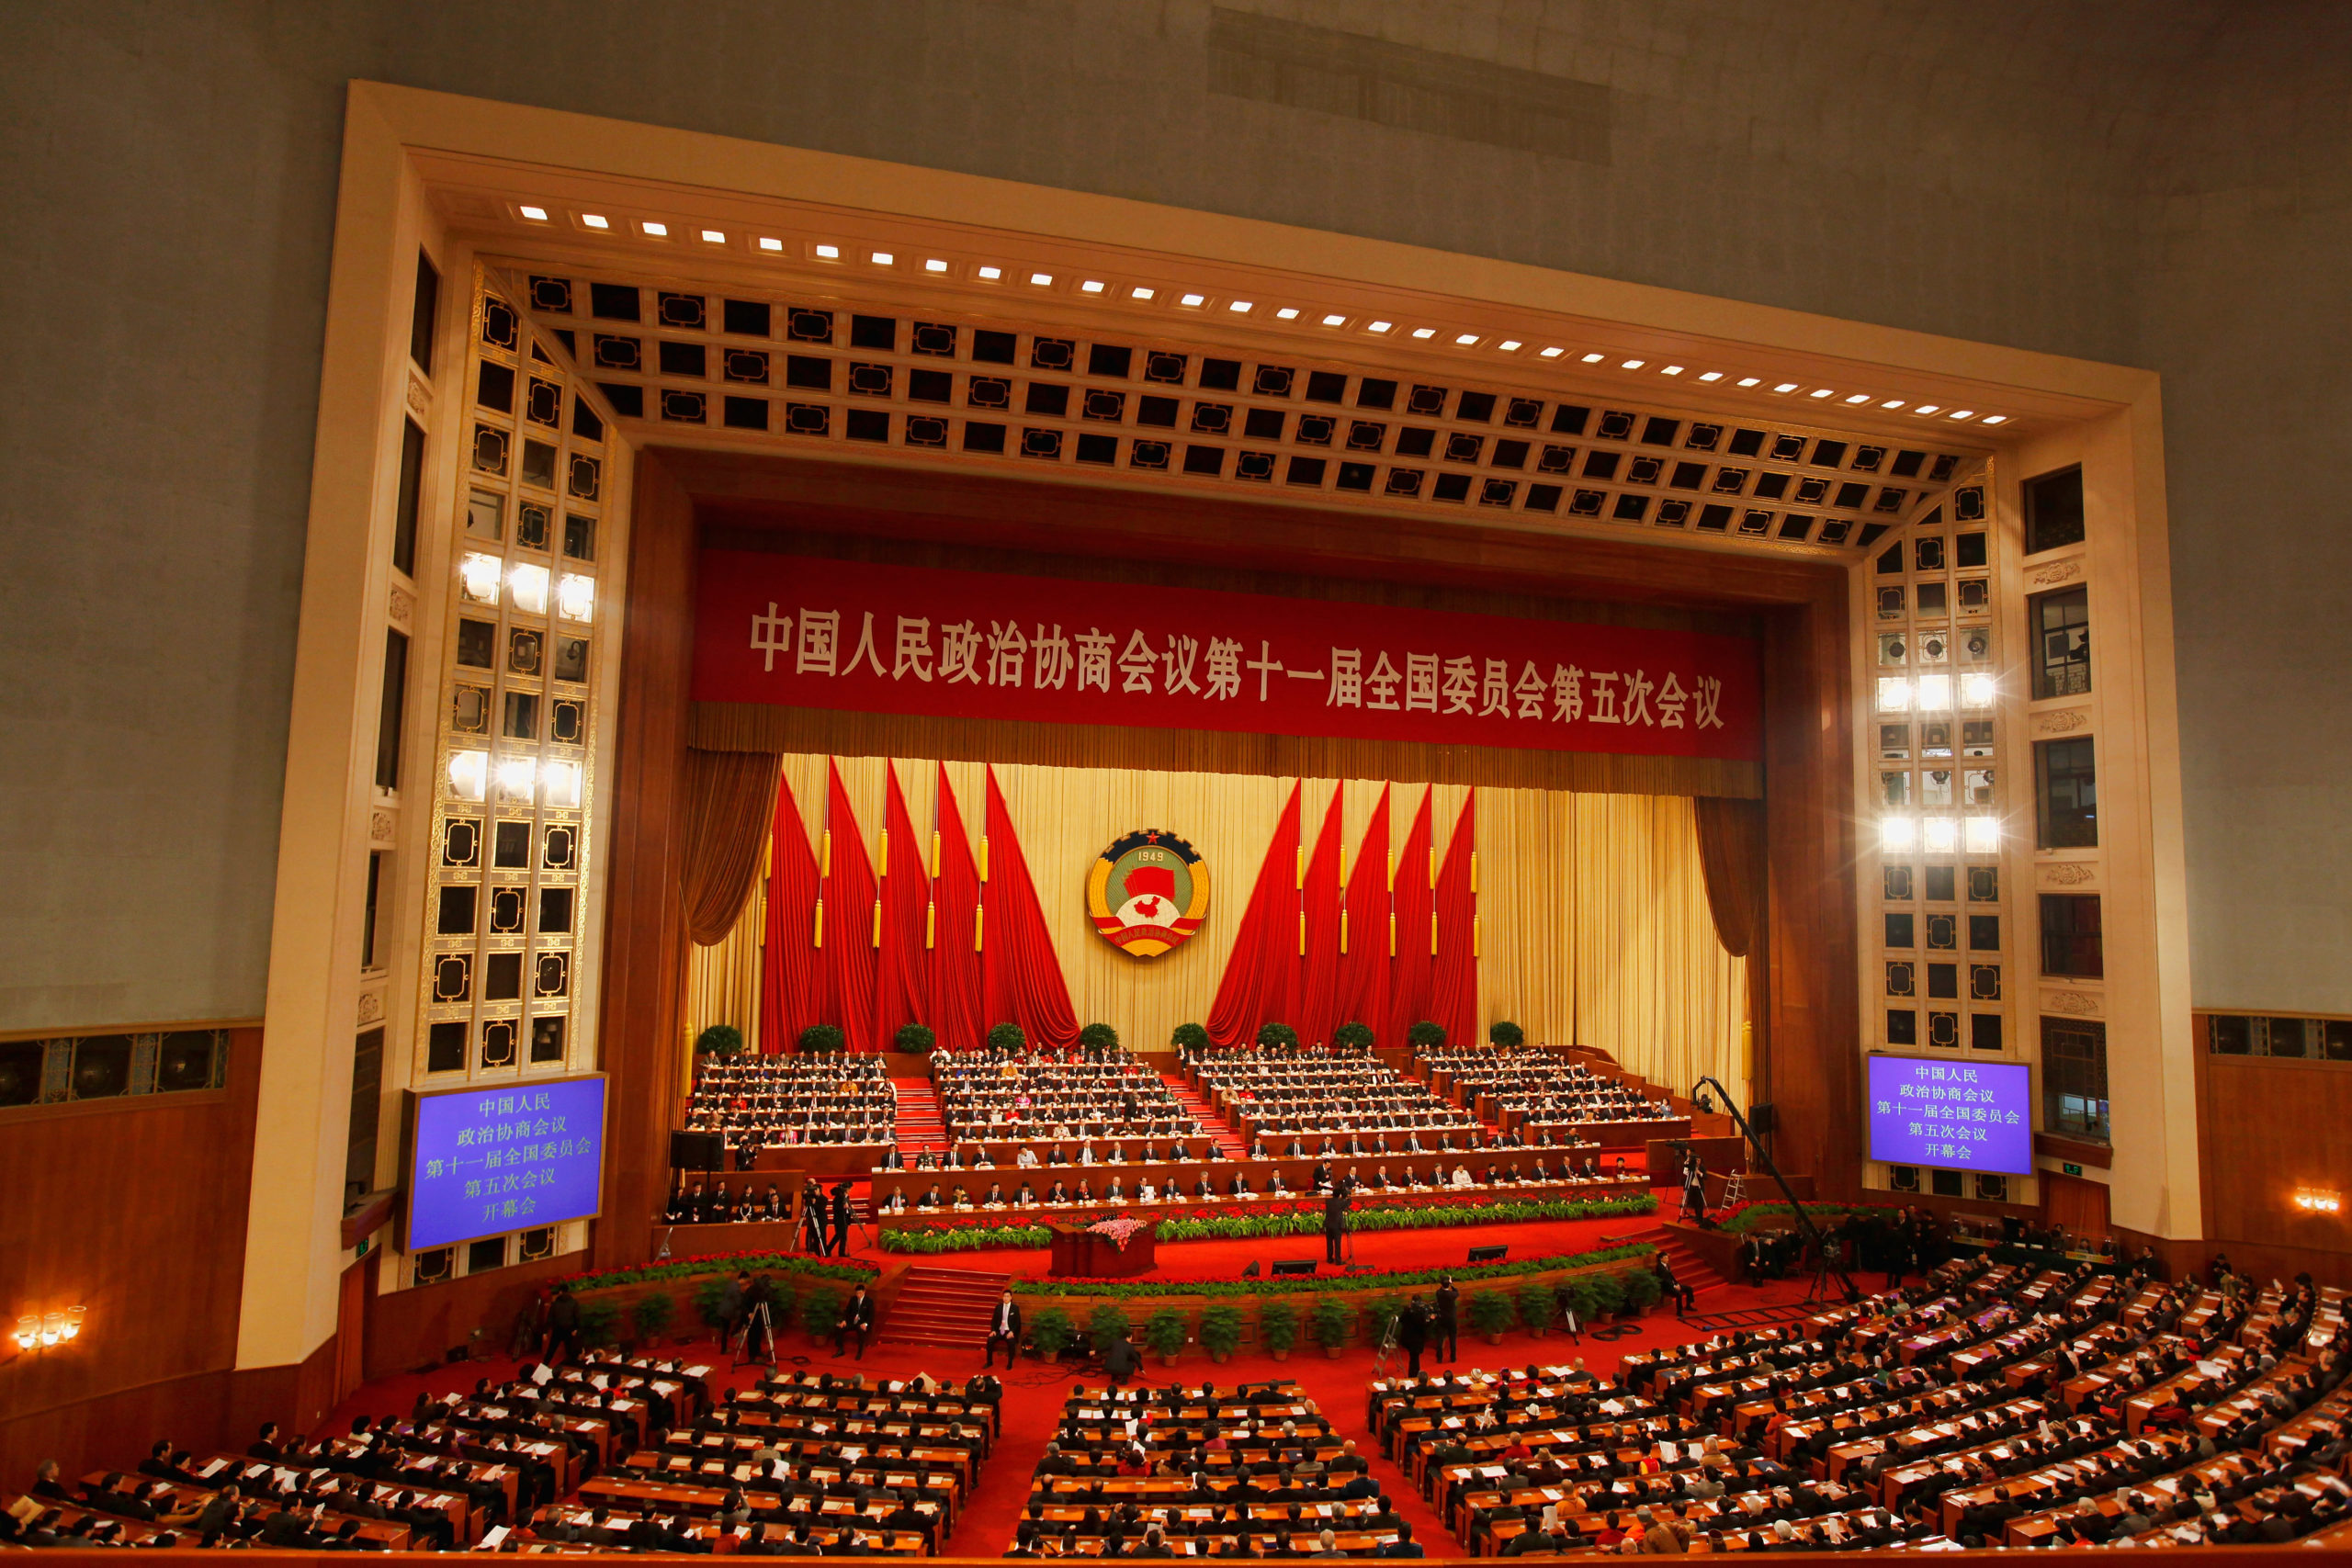 BEIJING, CHINA - MARCH 03: Delegates take their seats for the opening ceremony of the Chinese People's Political Consultative Conference (CPPCC) at Great Hall of the People on March 3, 2012 in Beijing, China. The Chinese People's Political Consultative Conference opens on March 3 in Beijing. (Photo by Lintao Zhang/Getty Images)